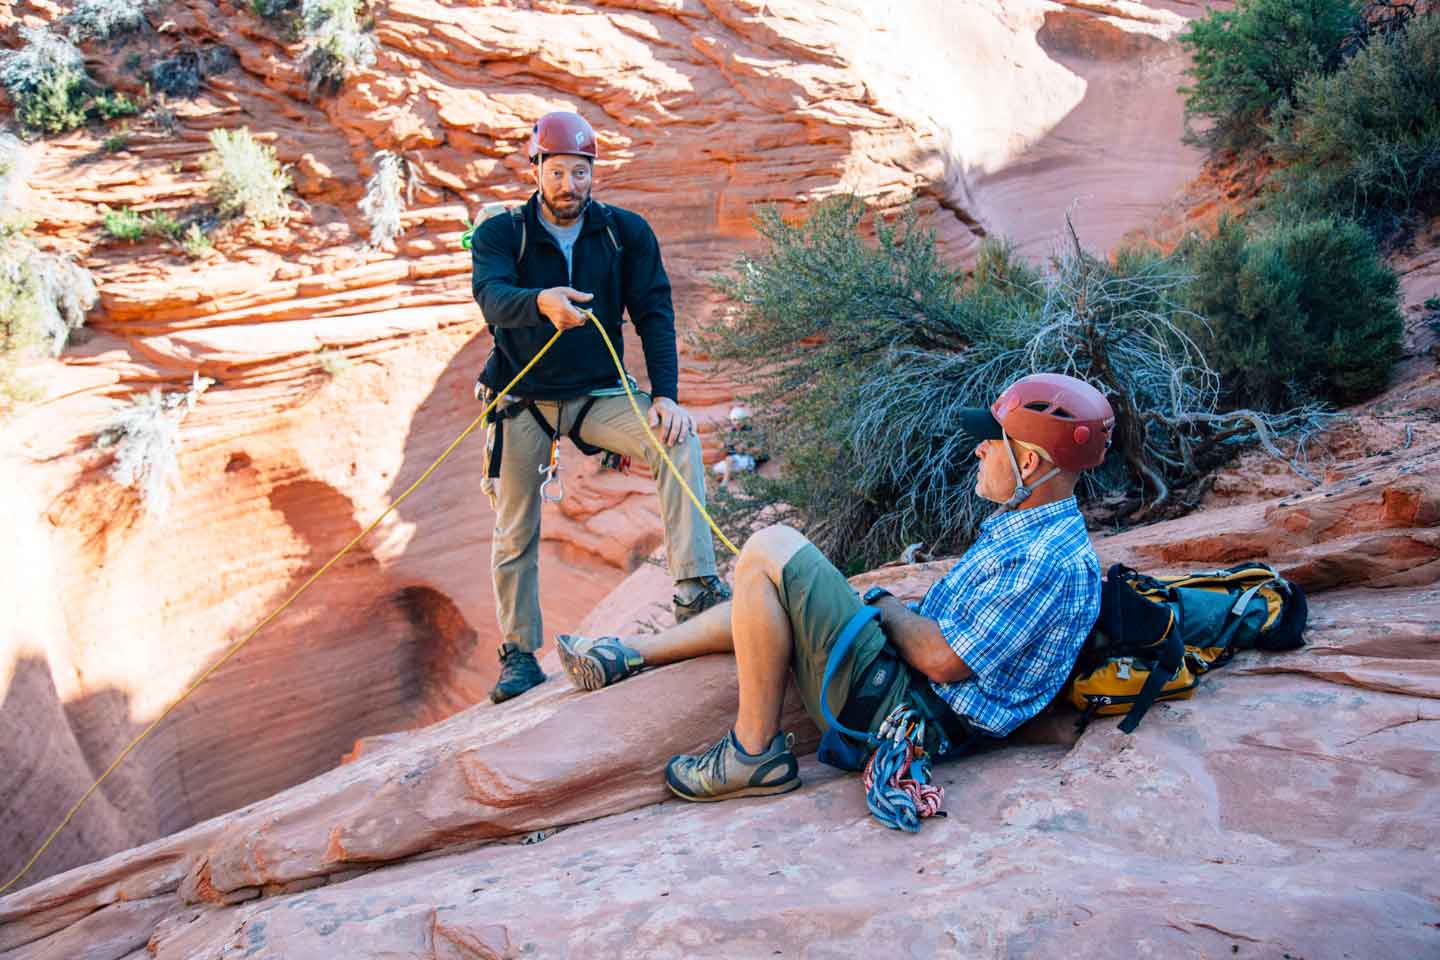 Learning Canyoneering with Zion Adventure Company